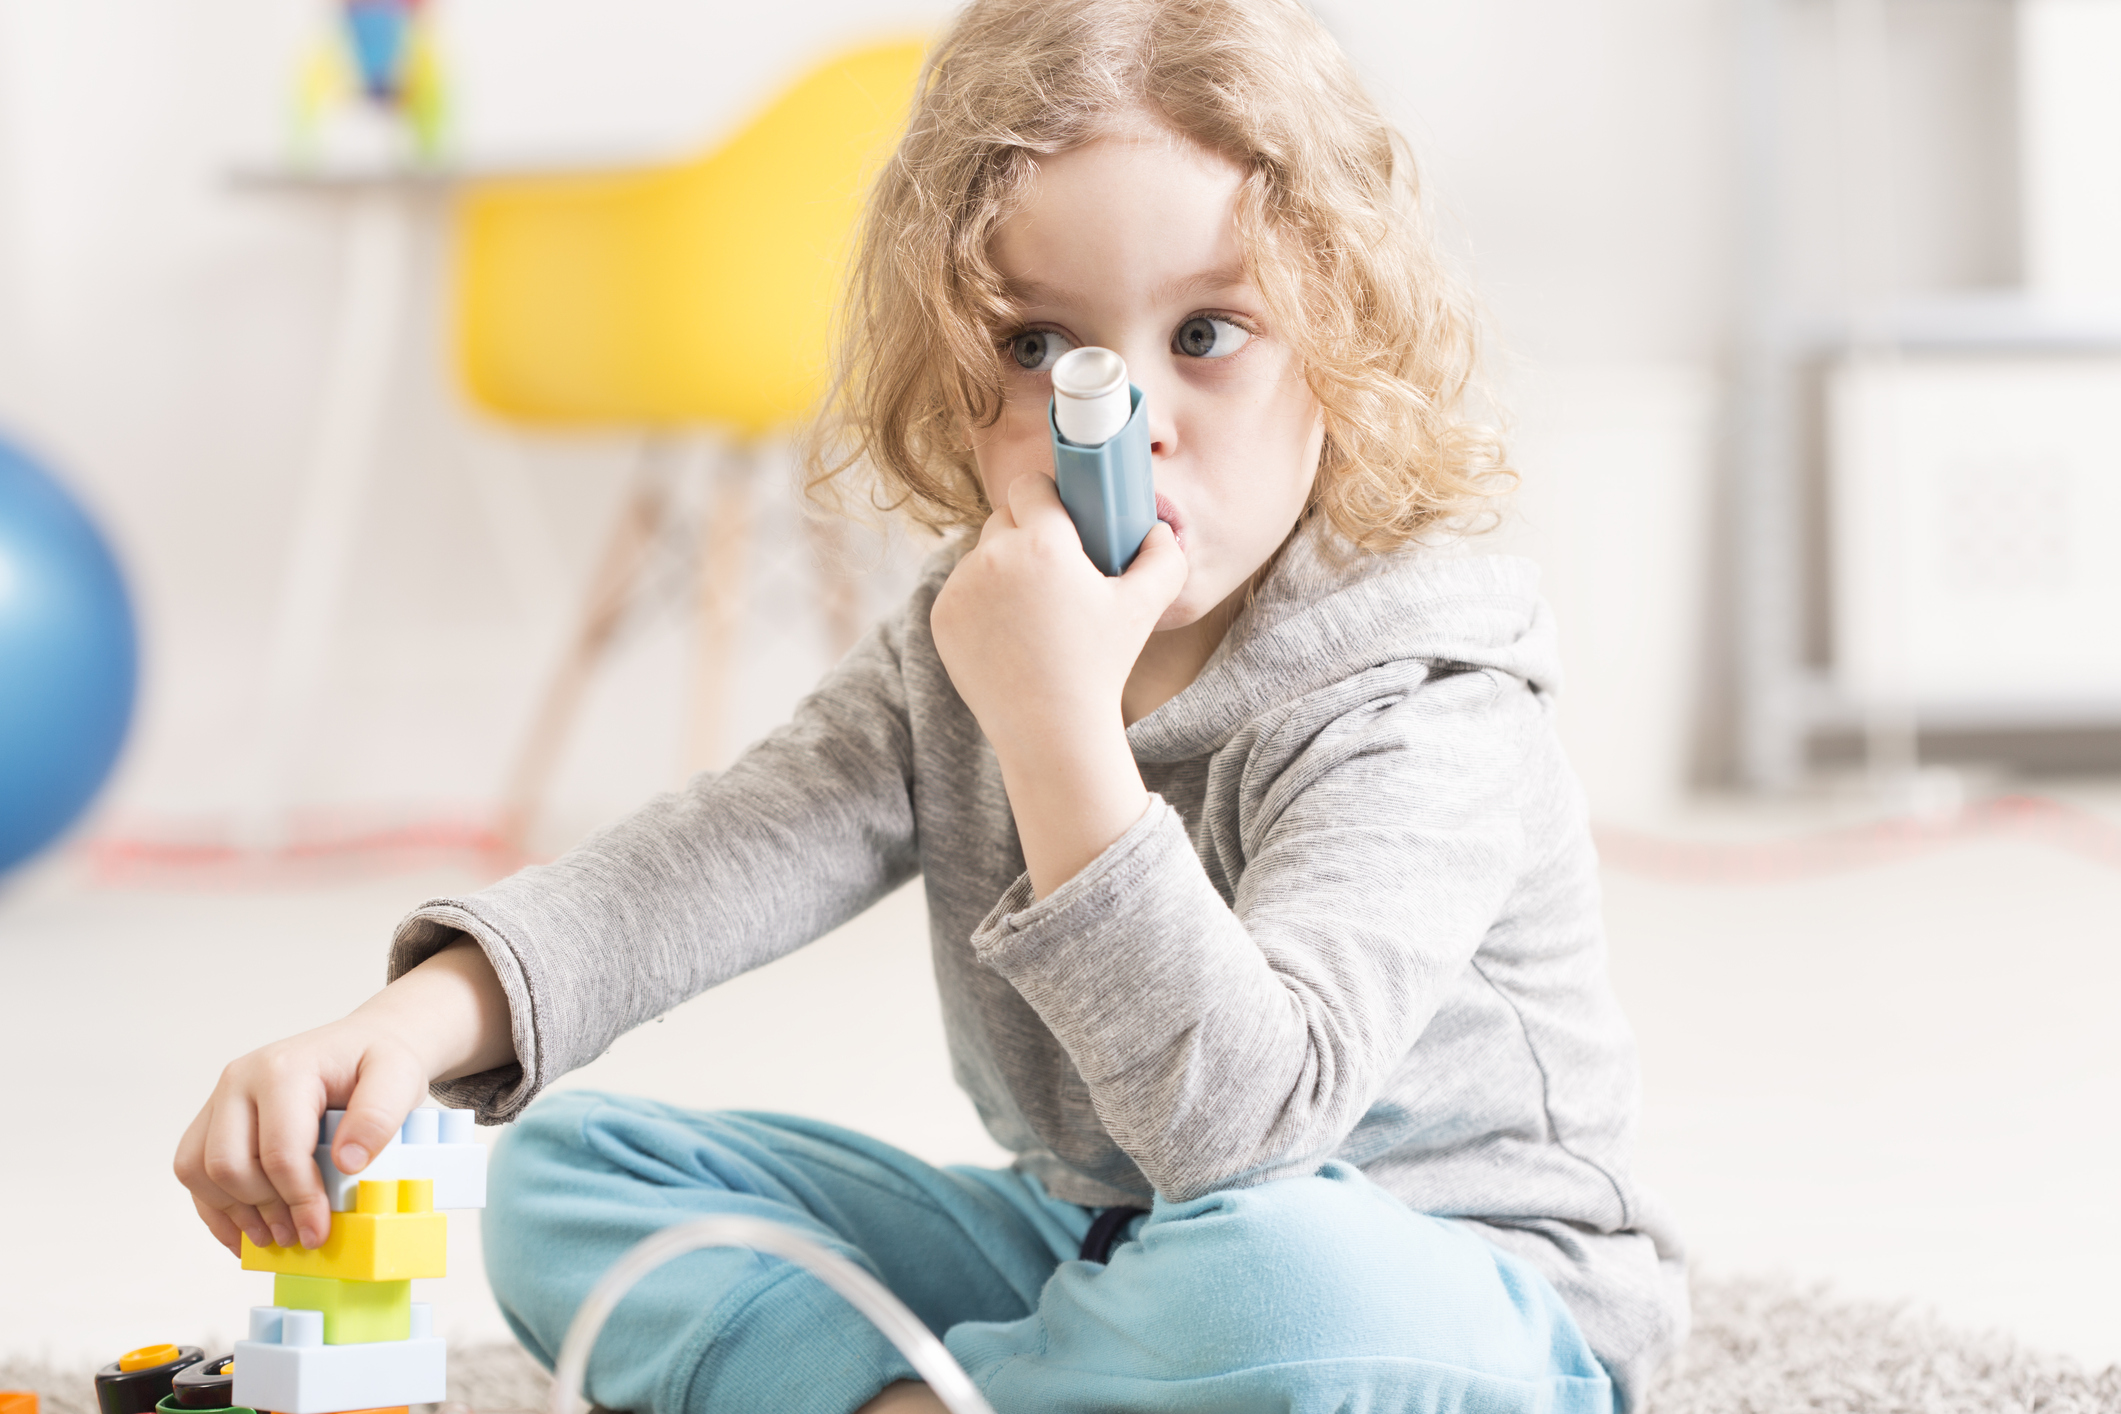 Cropped shot of a small girl sitting on a floor and using her inhaler